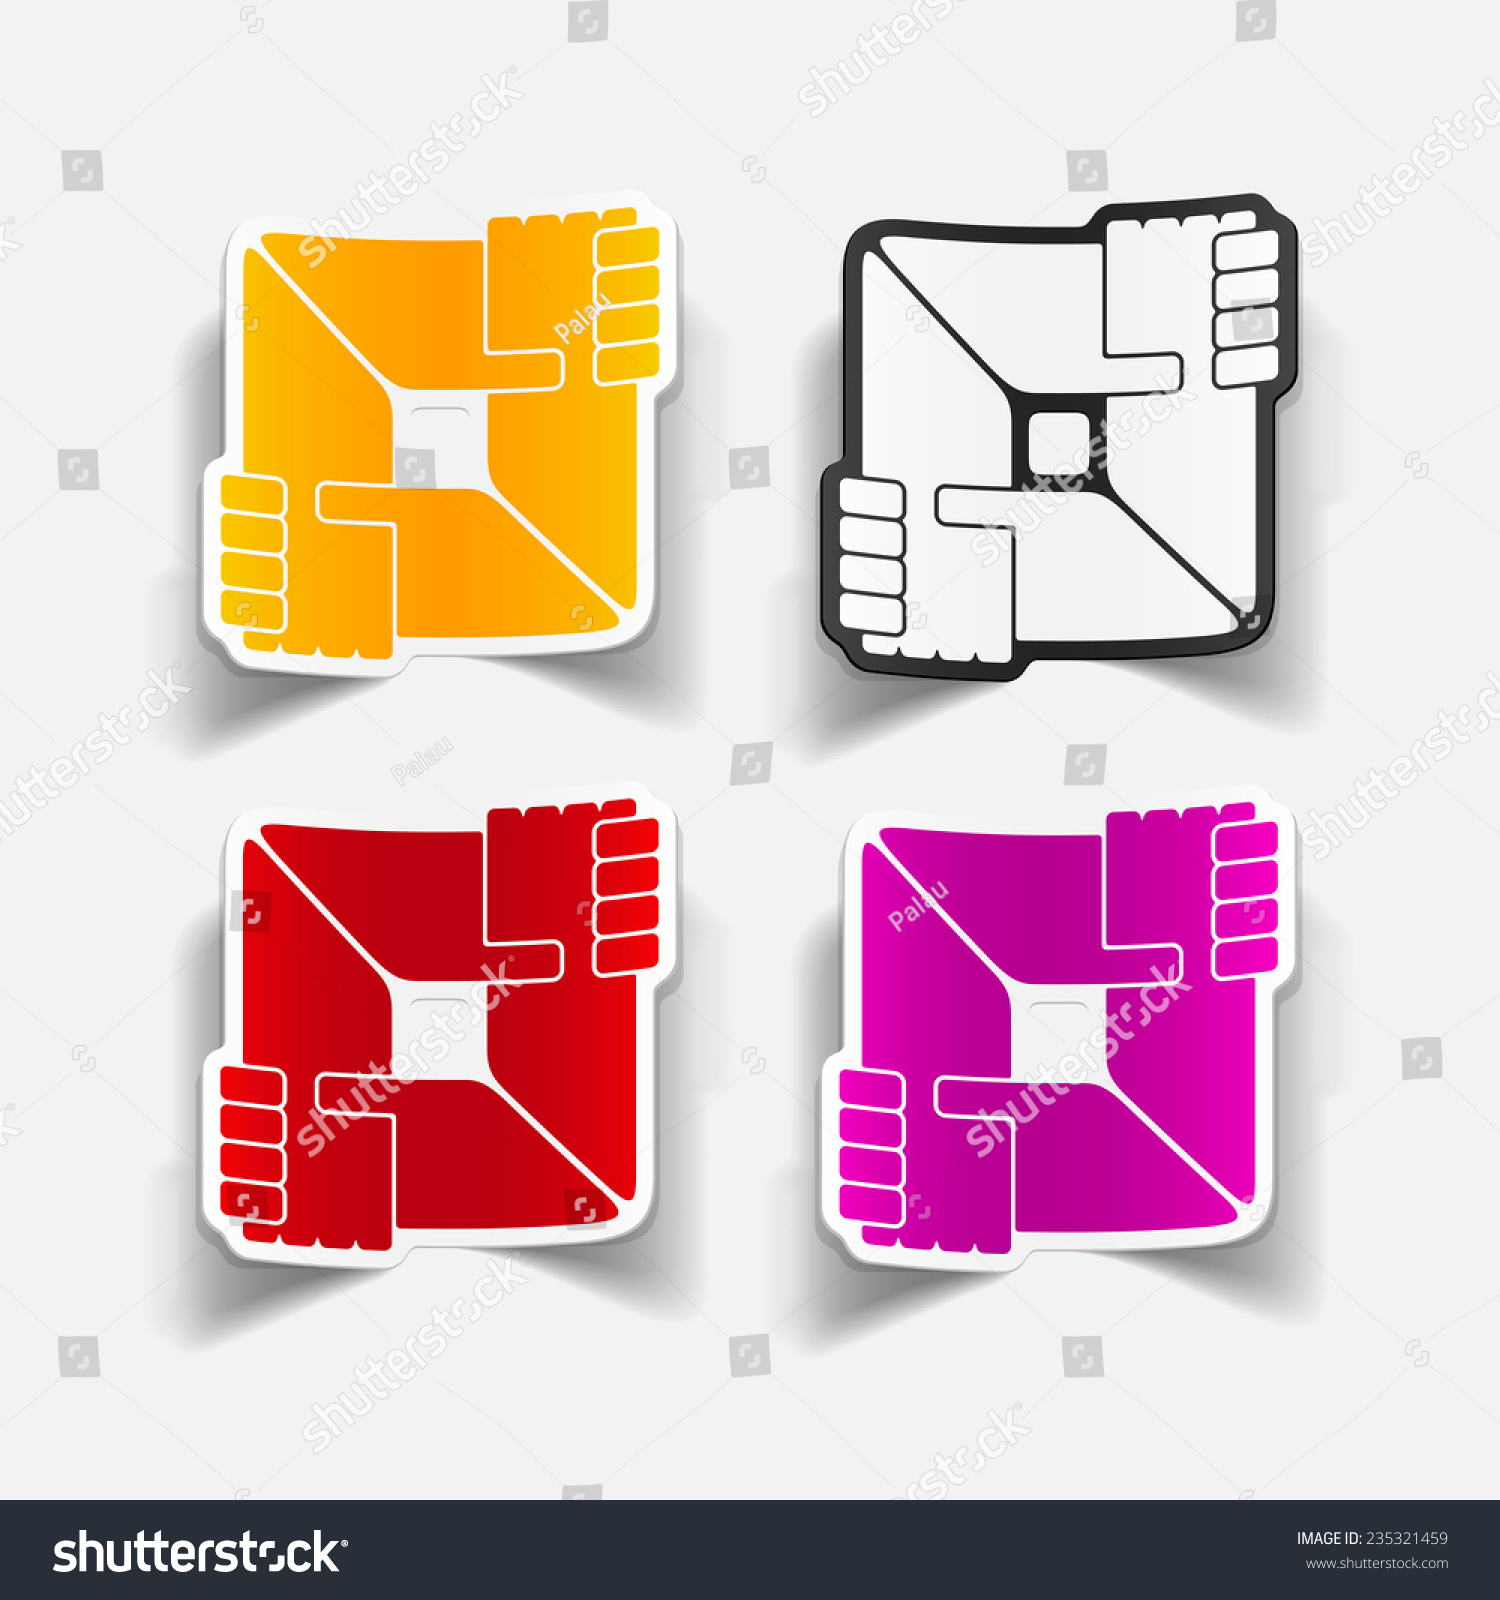 realistic design element handshake Vector Illustration